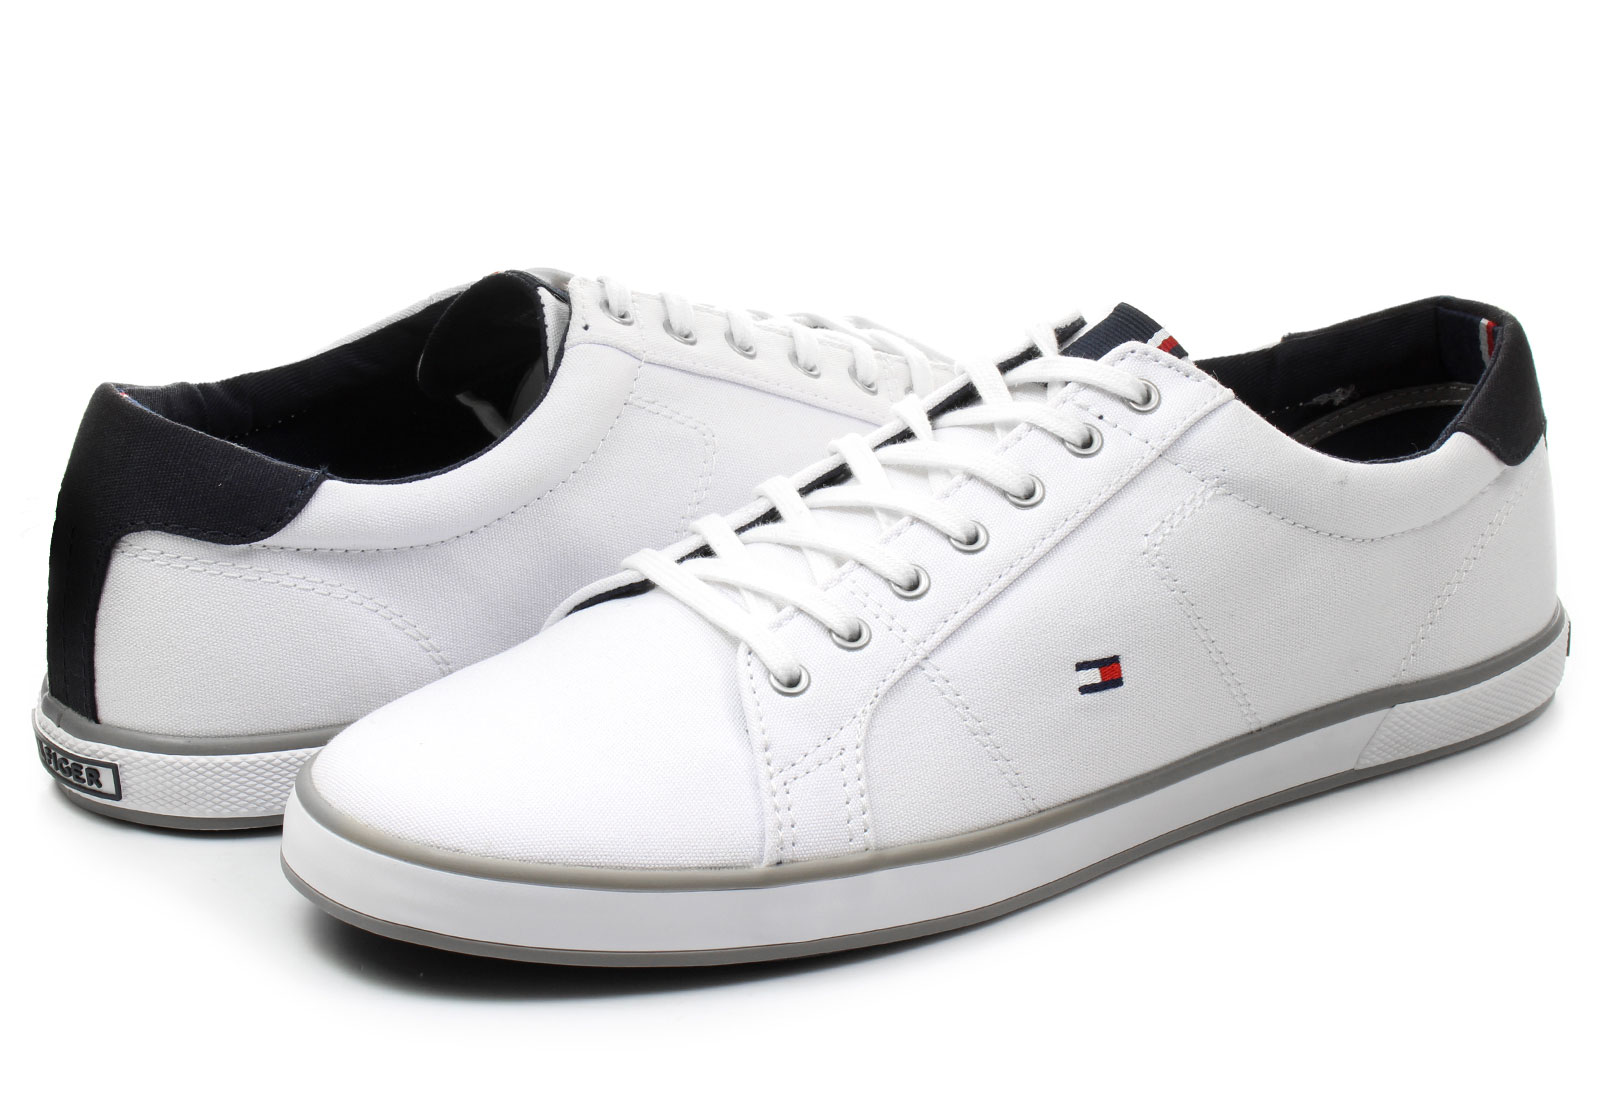 Tommy Hilfiger Cipő - Harlow 1d - 16S-0892-100 - Office Shoes ... 912b61fb86